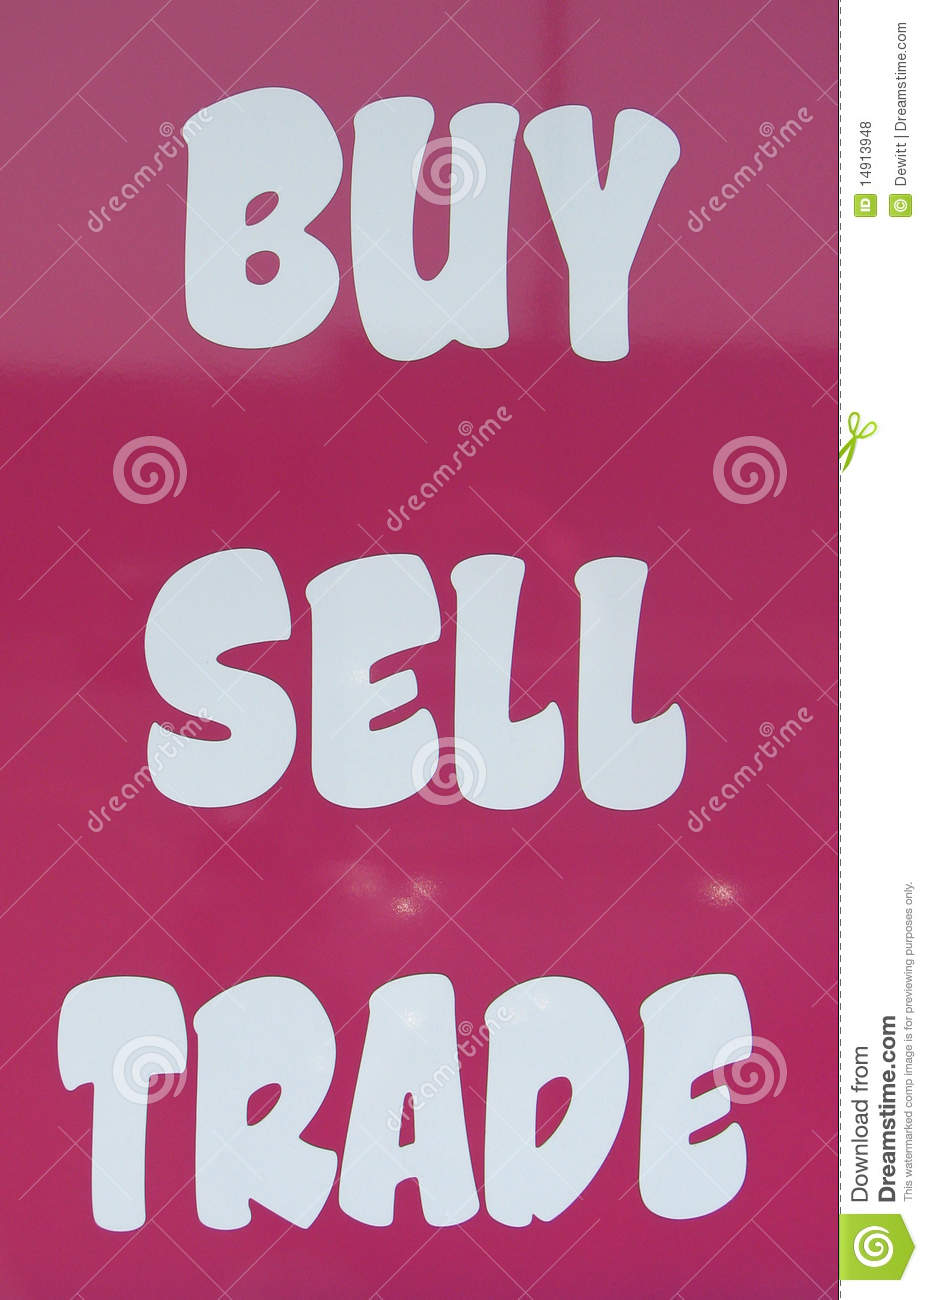 Buy and sell clothing stores